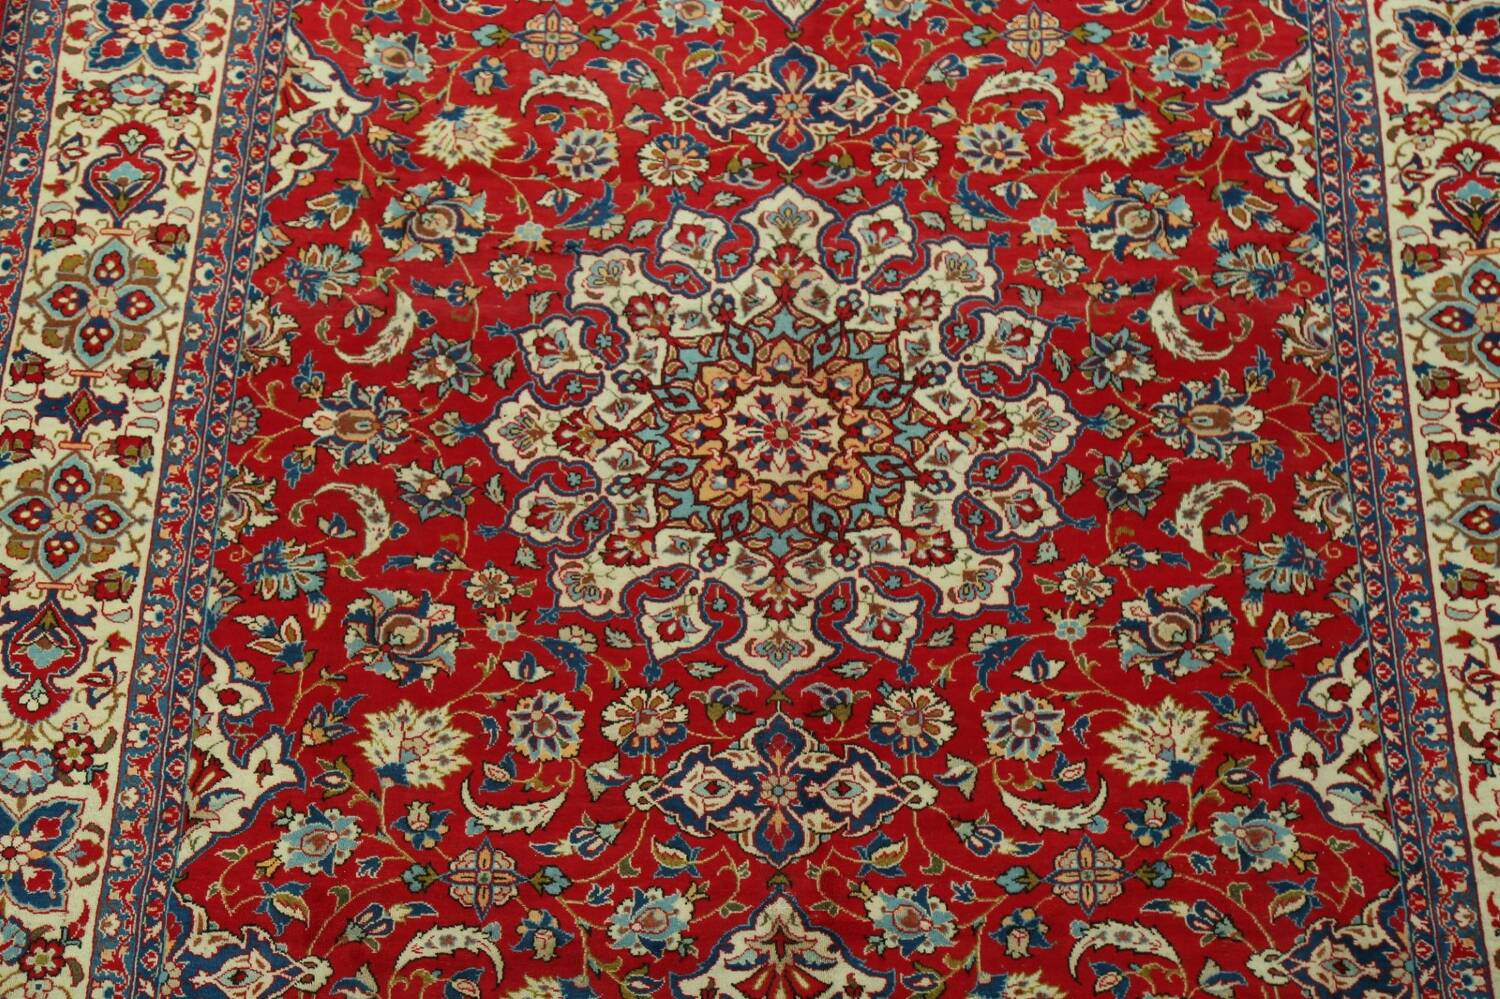 Vintage Floral Red Najafabad Persian Area Rug 8x12 image 4